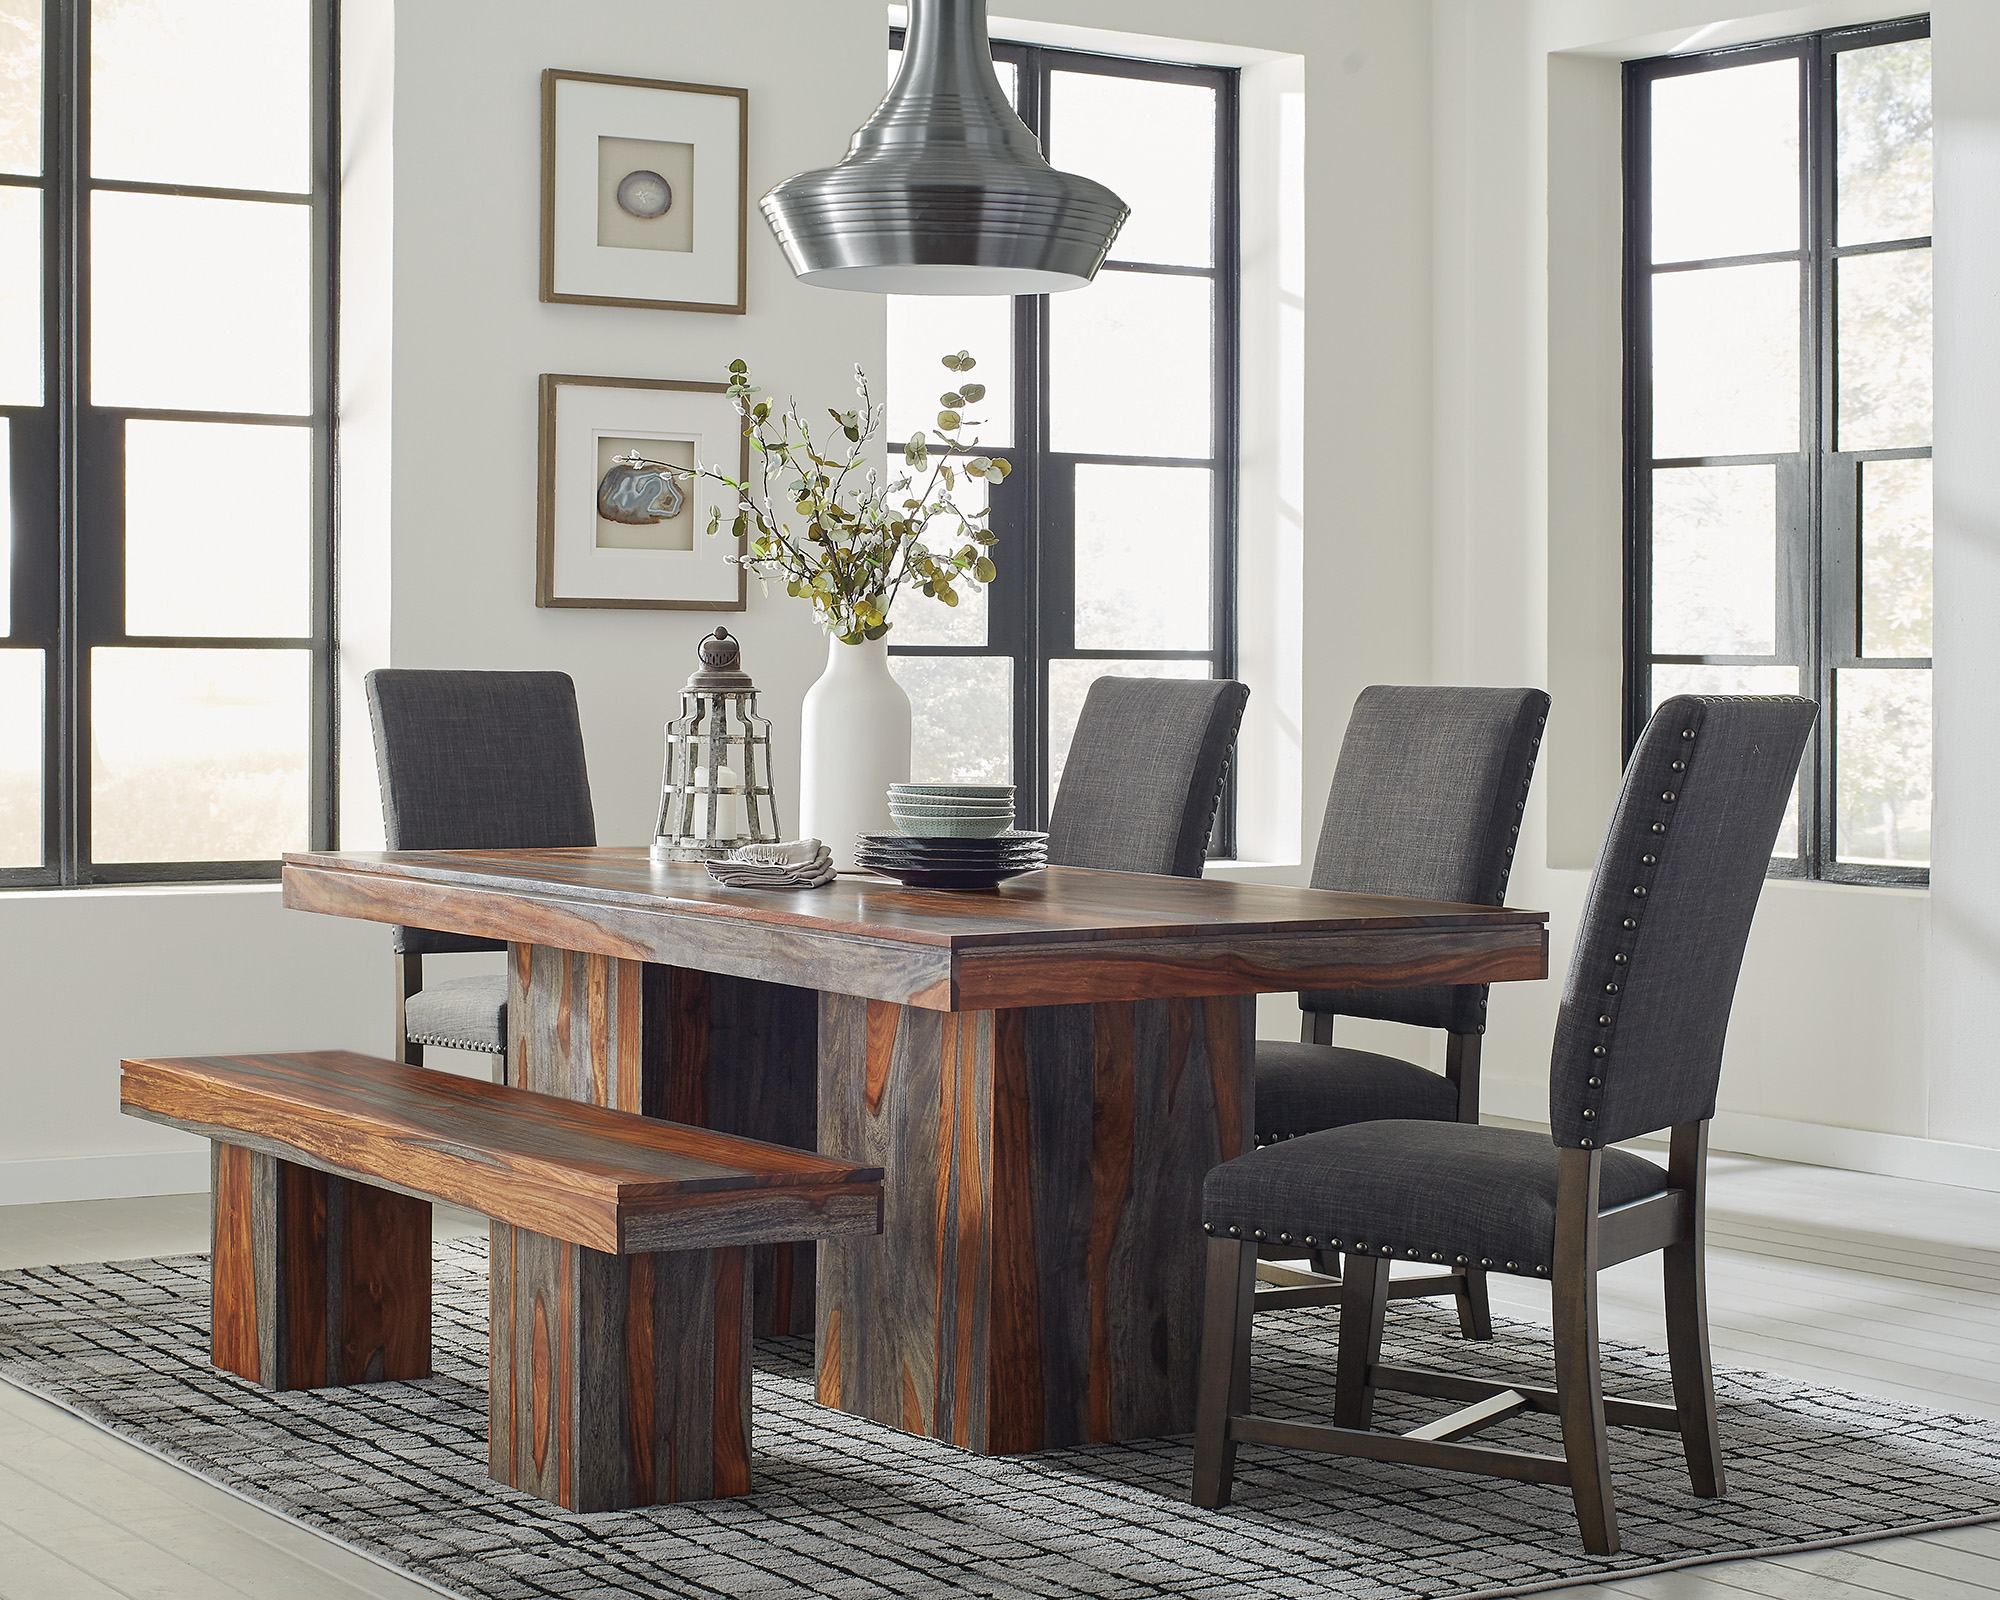 Fabulous Binghamton Rustic Dining Table Set With Bench Color Option Andrewgaddart Wooden Chair Designs For Living Room Andrewgaddartcom